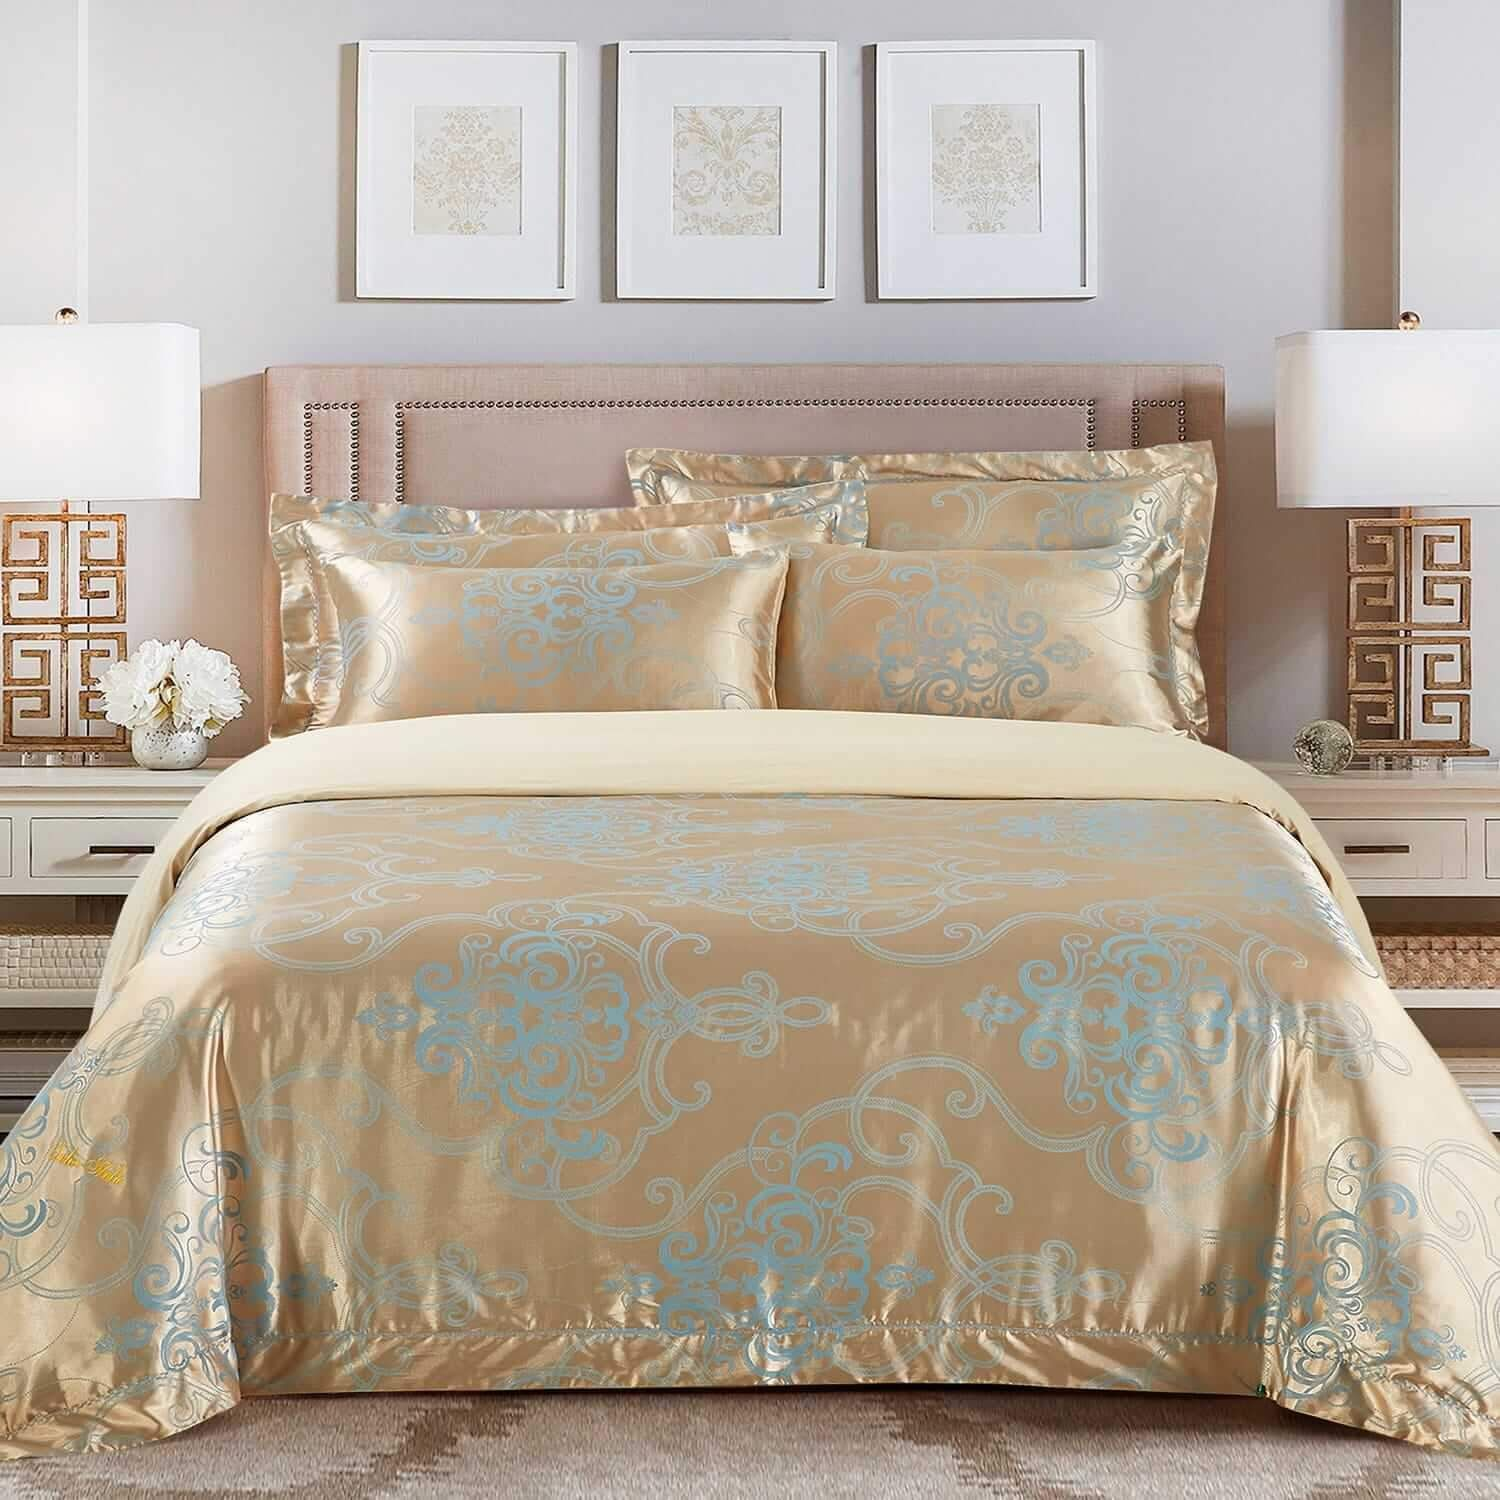 queen cover linen waffle white chocolate quilt itm black double duvet single set king